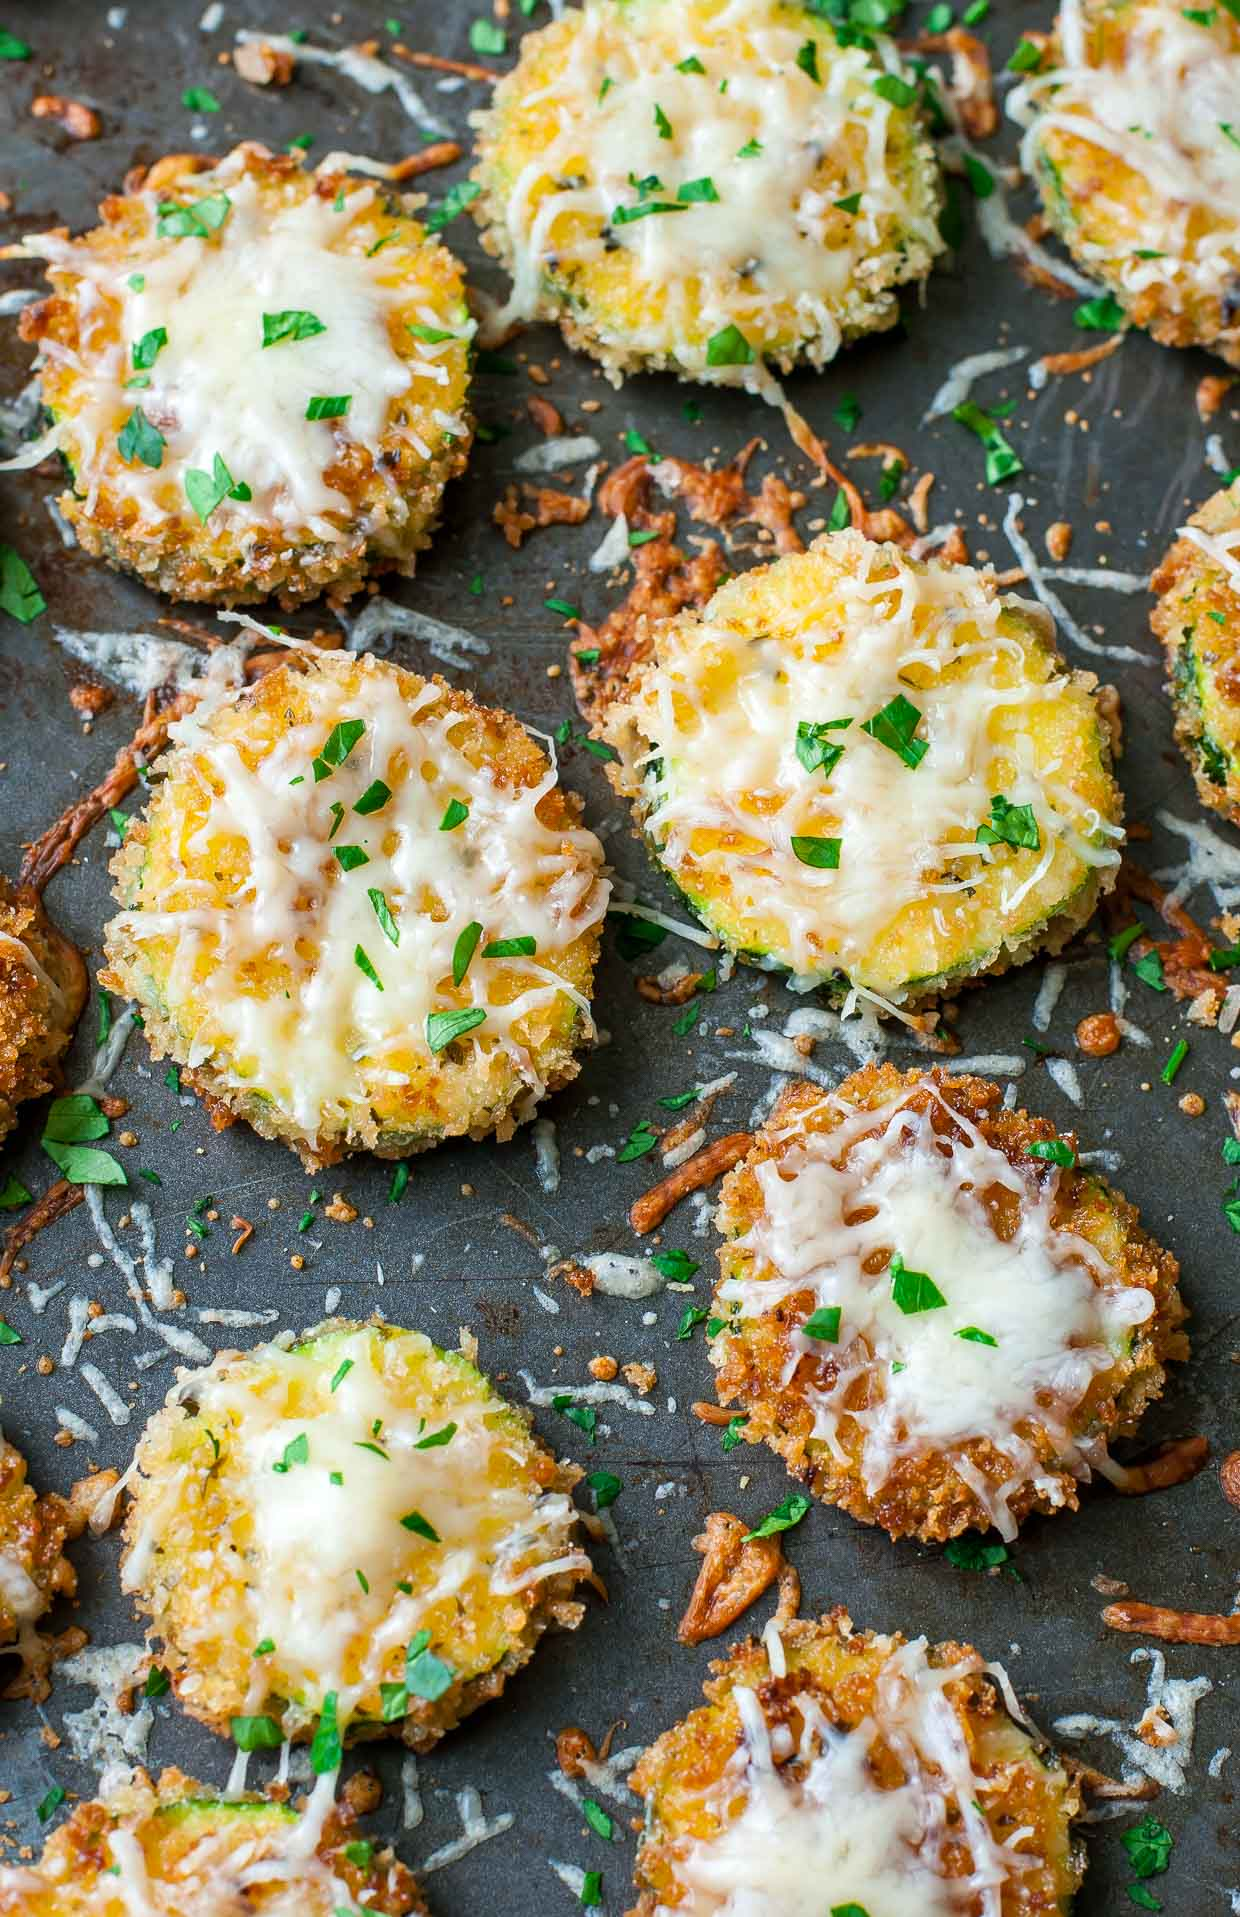 We're in love! Husband Approved Zucchini Parmesan - doubles as an appetizer and a main course